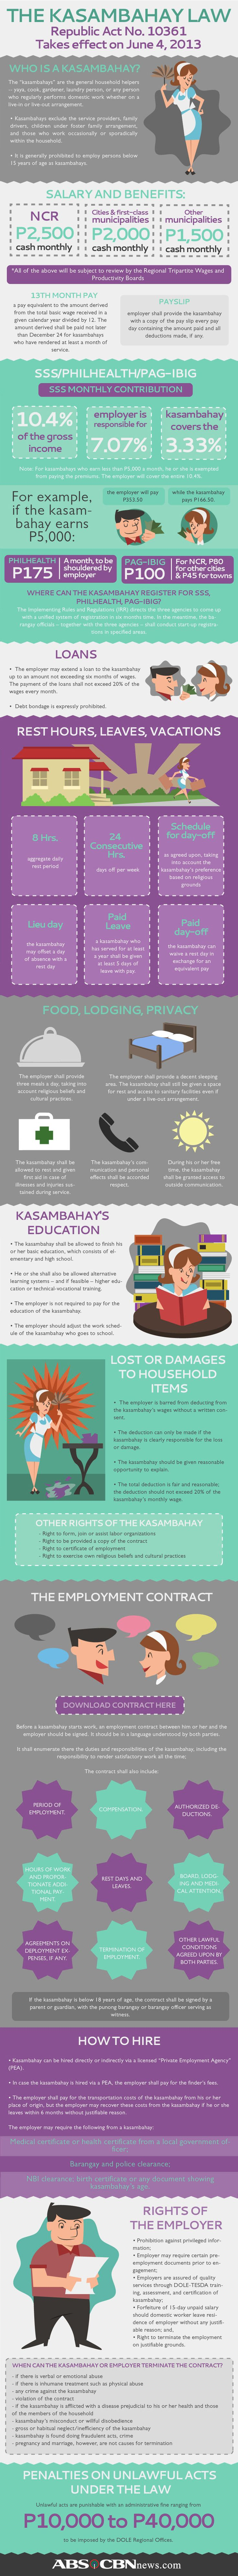 INFOGRAPHIC: The Kasambahay Law | Takes effect today, June 4, 2013. Very helpful infographic.